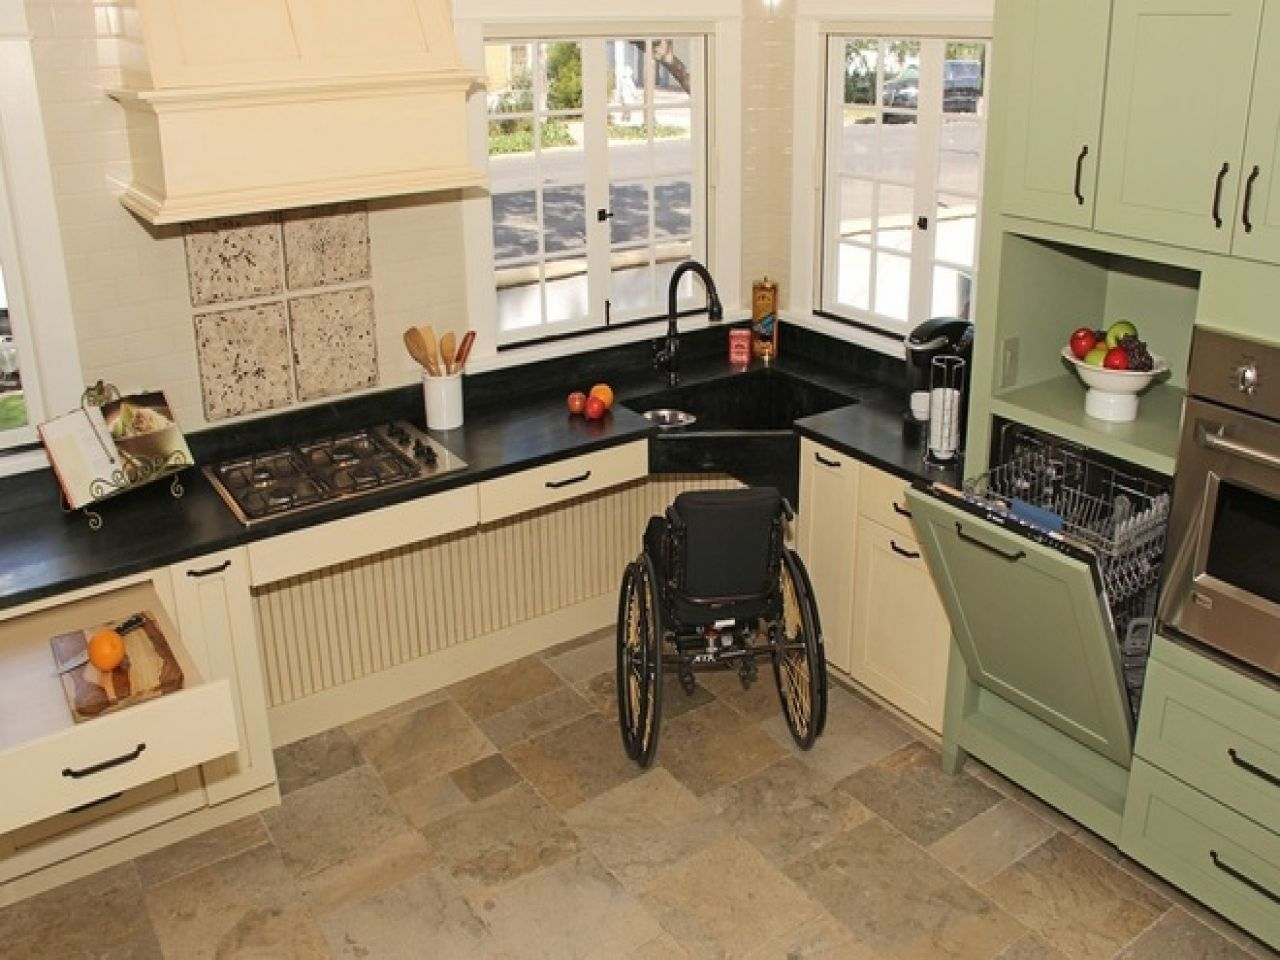 Universal Design Kitchen Cabinets Designer Sinks Kitchens Wheelchair Accessible Kitchen